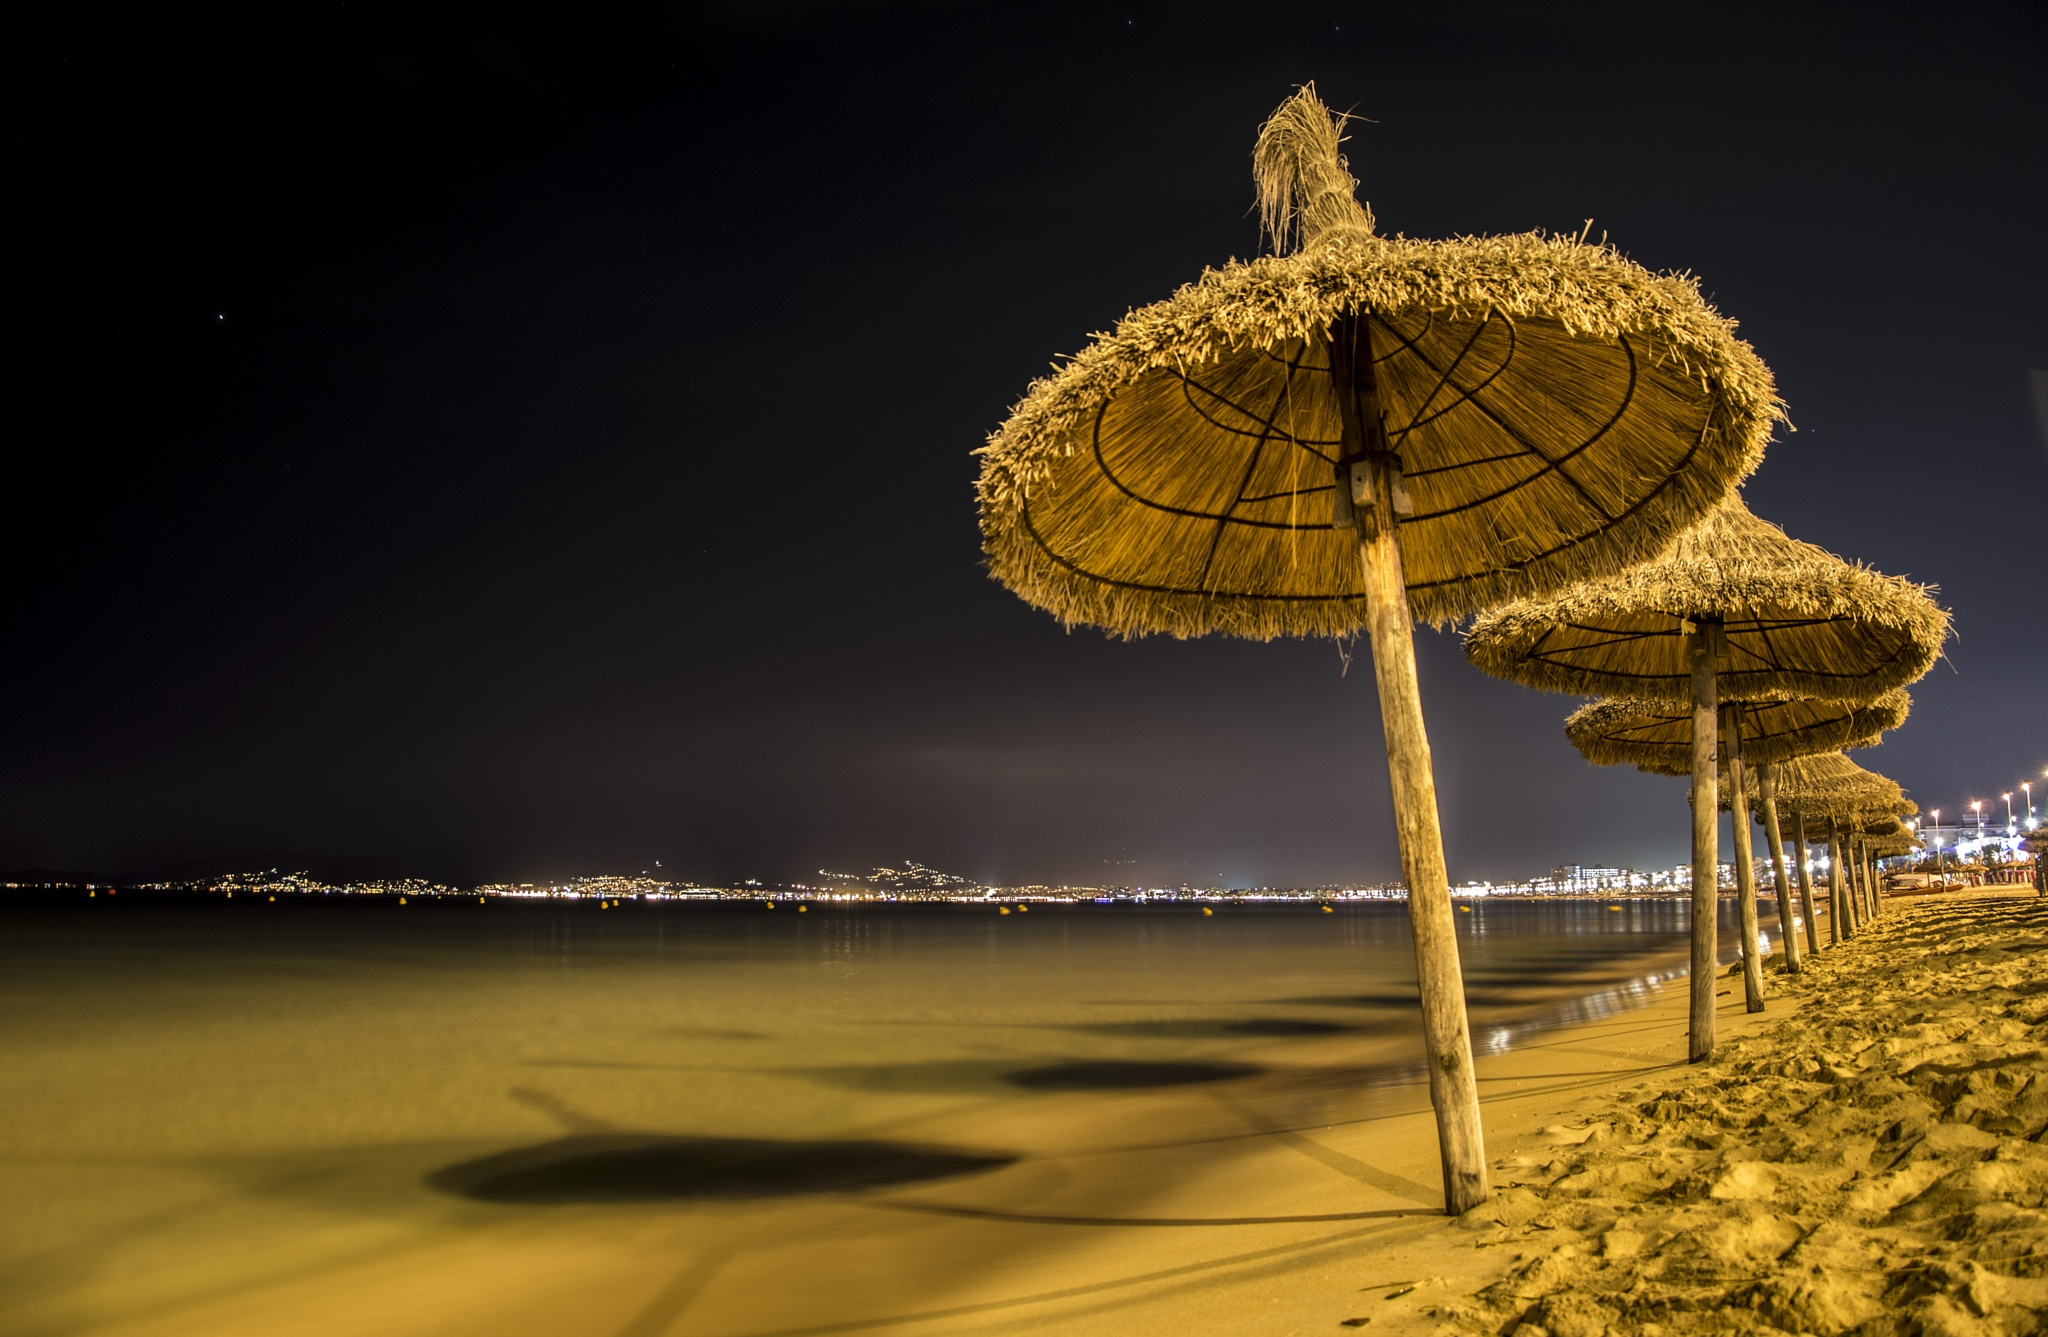 Playa de Palma at night by anzesusel